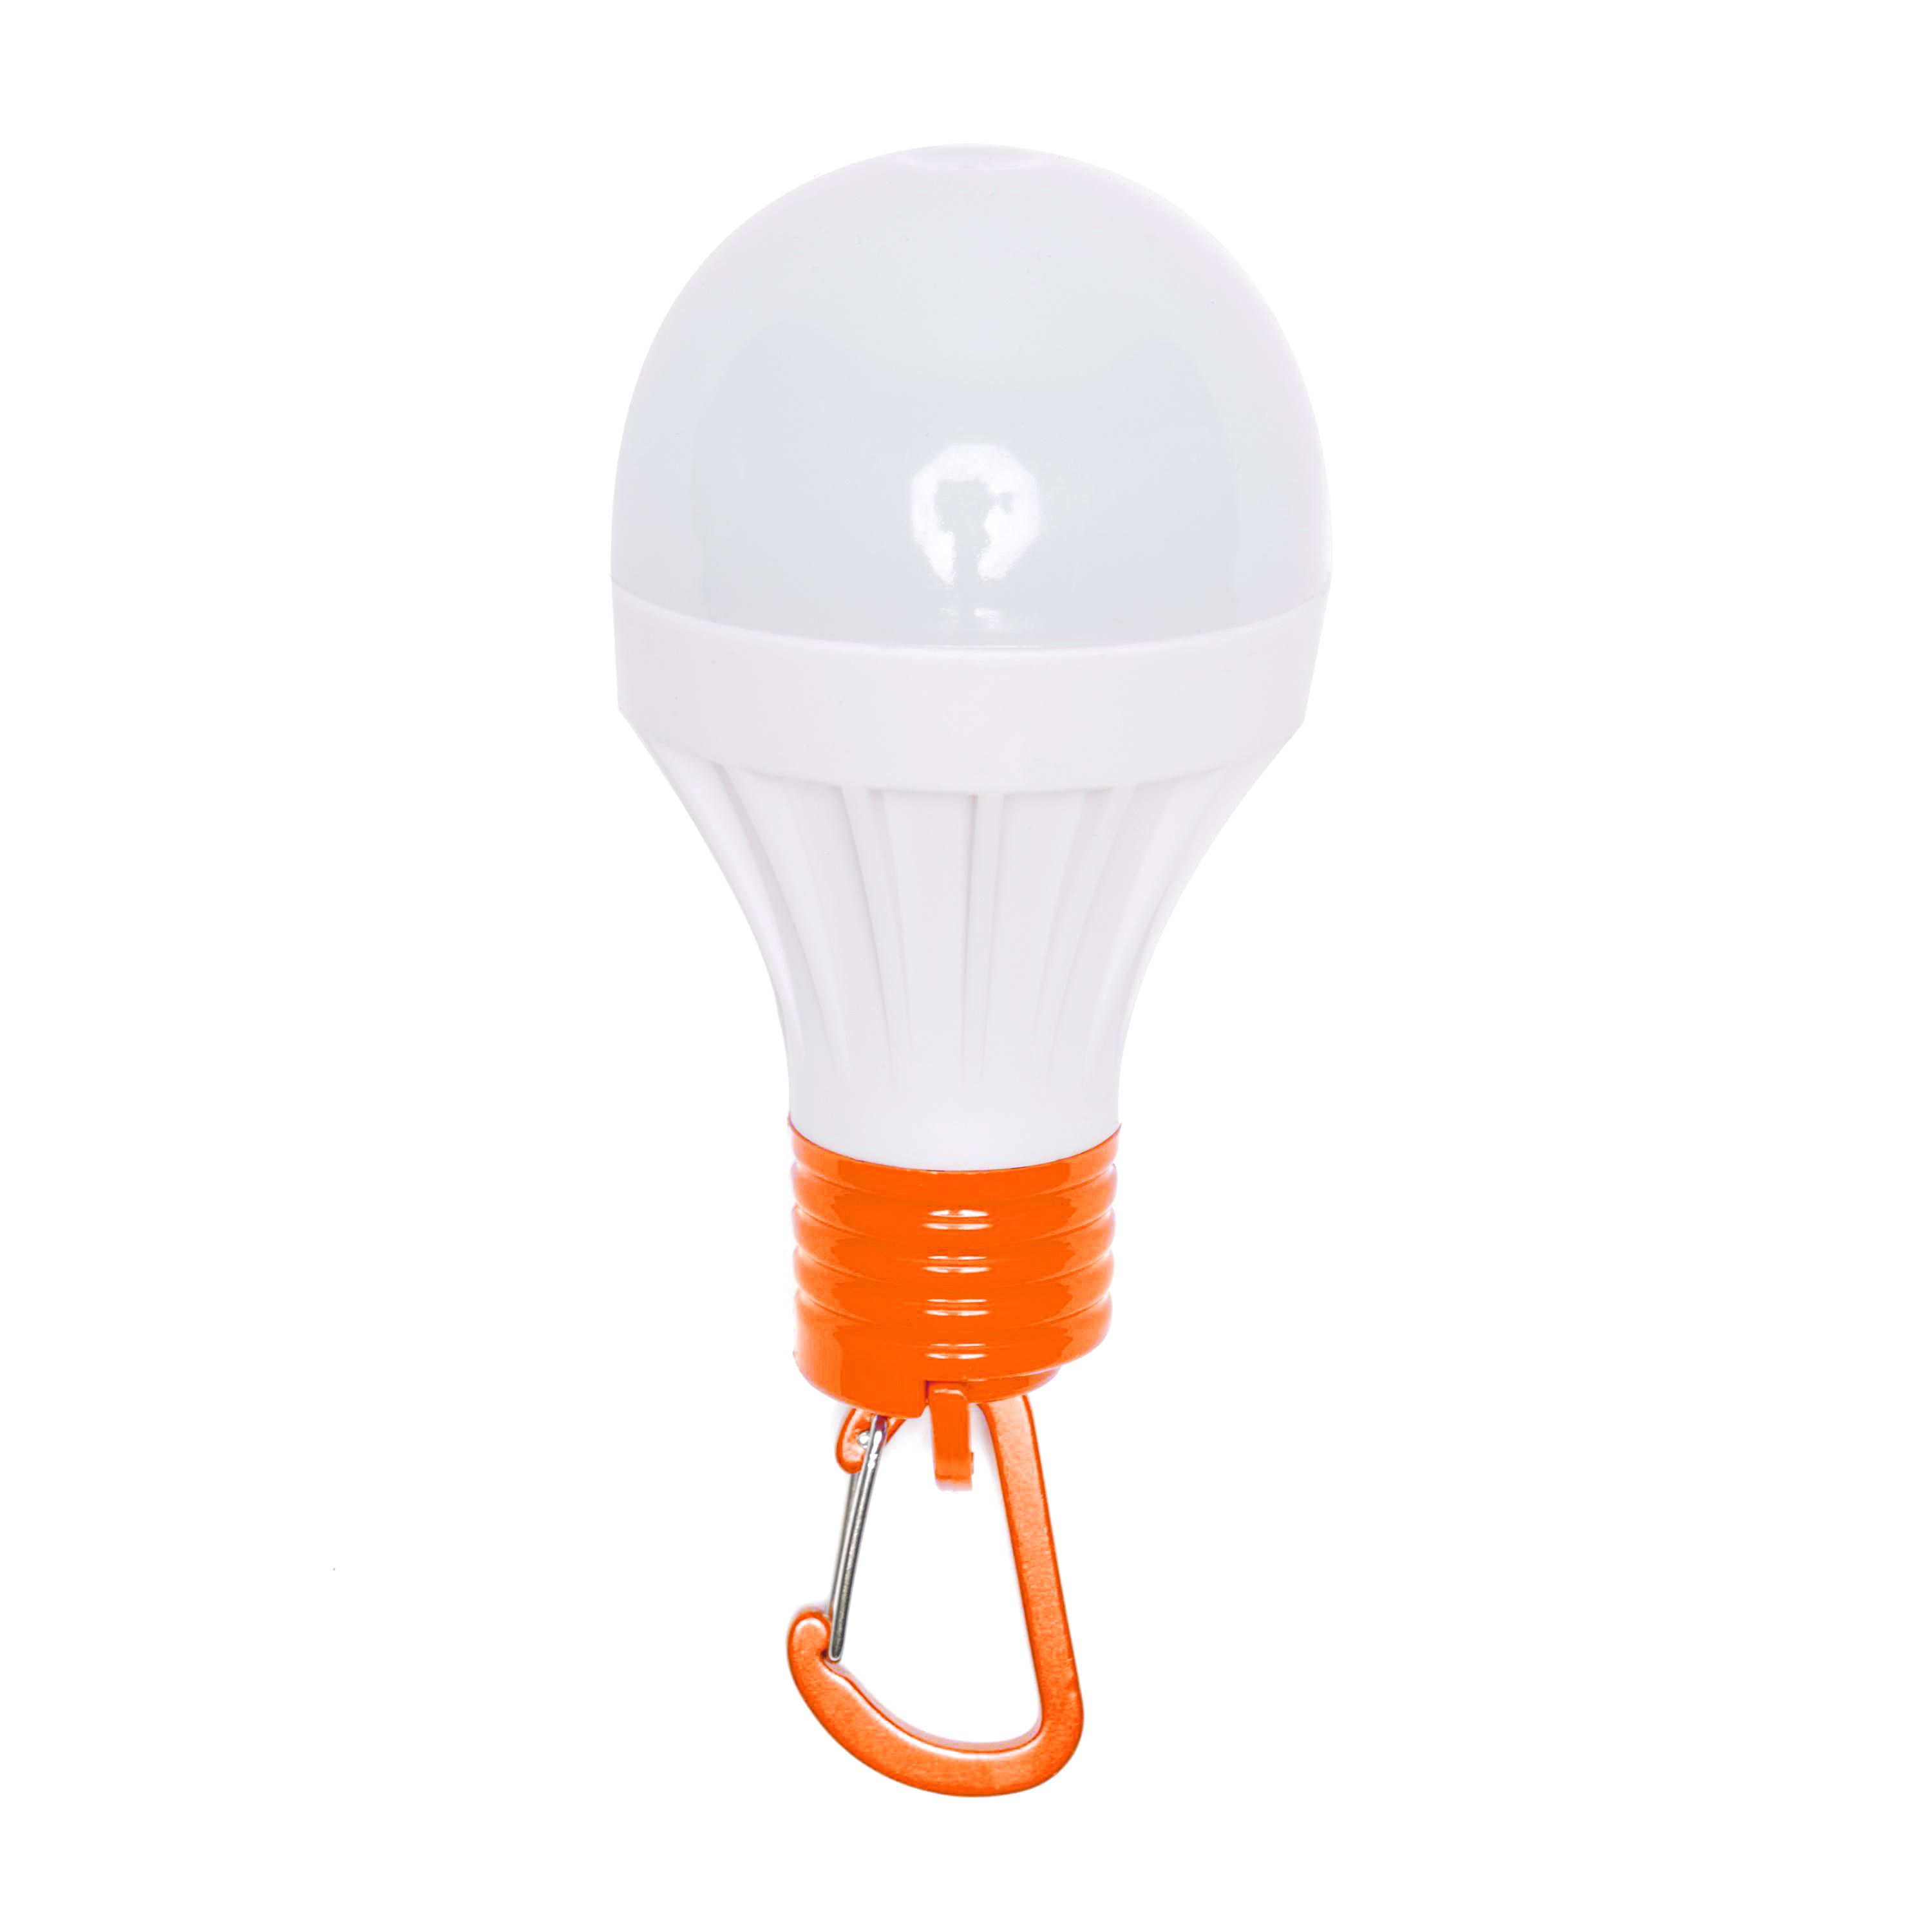 EUROHIKE 1W LED Orb Light